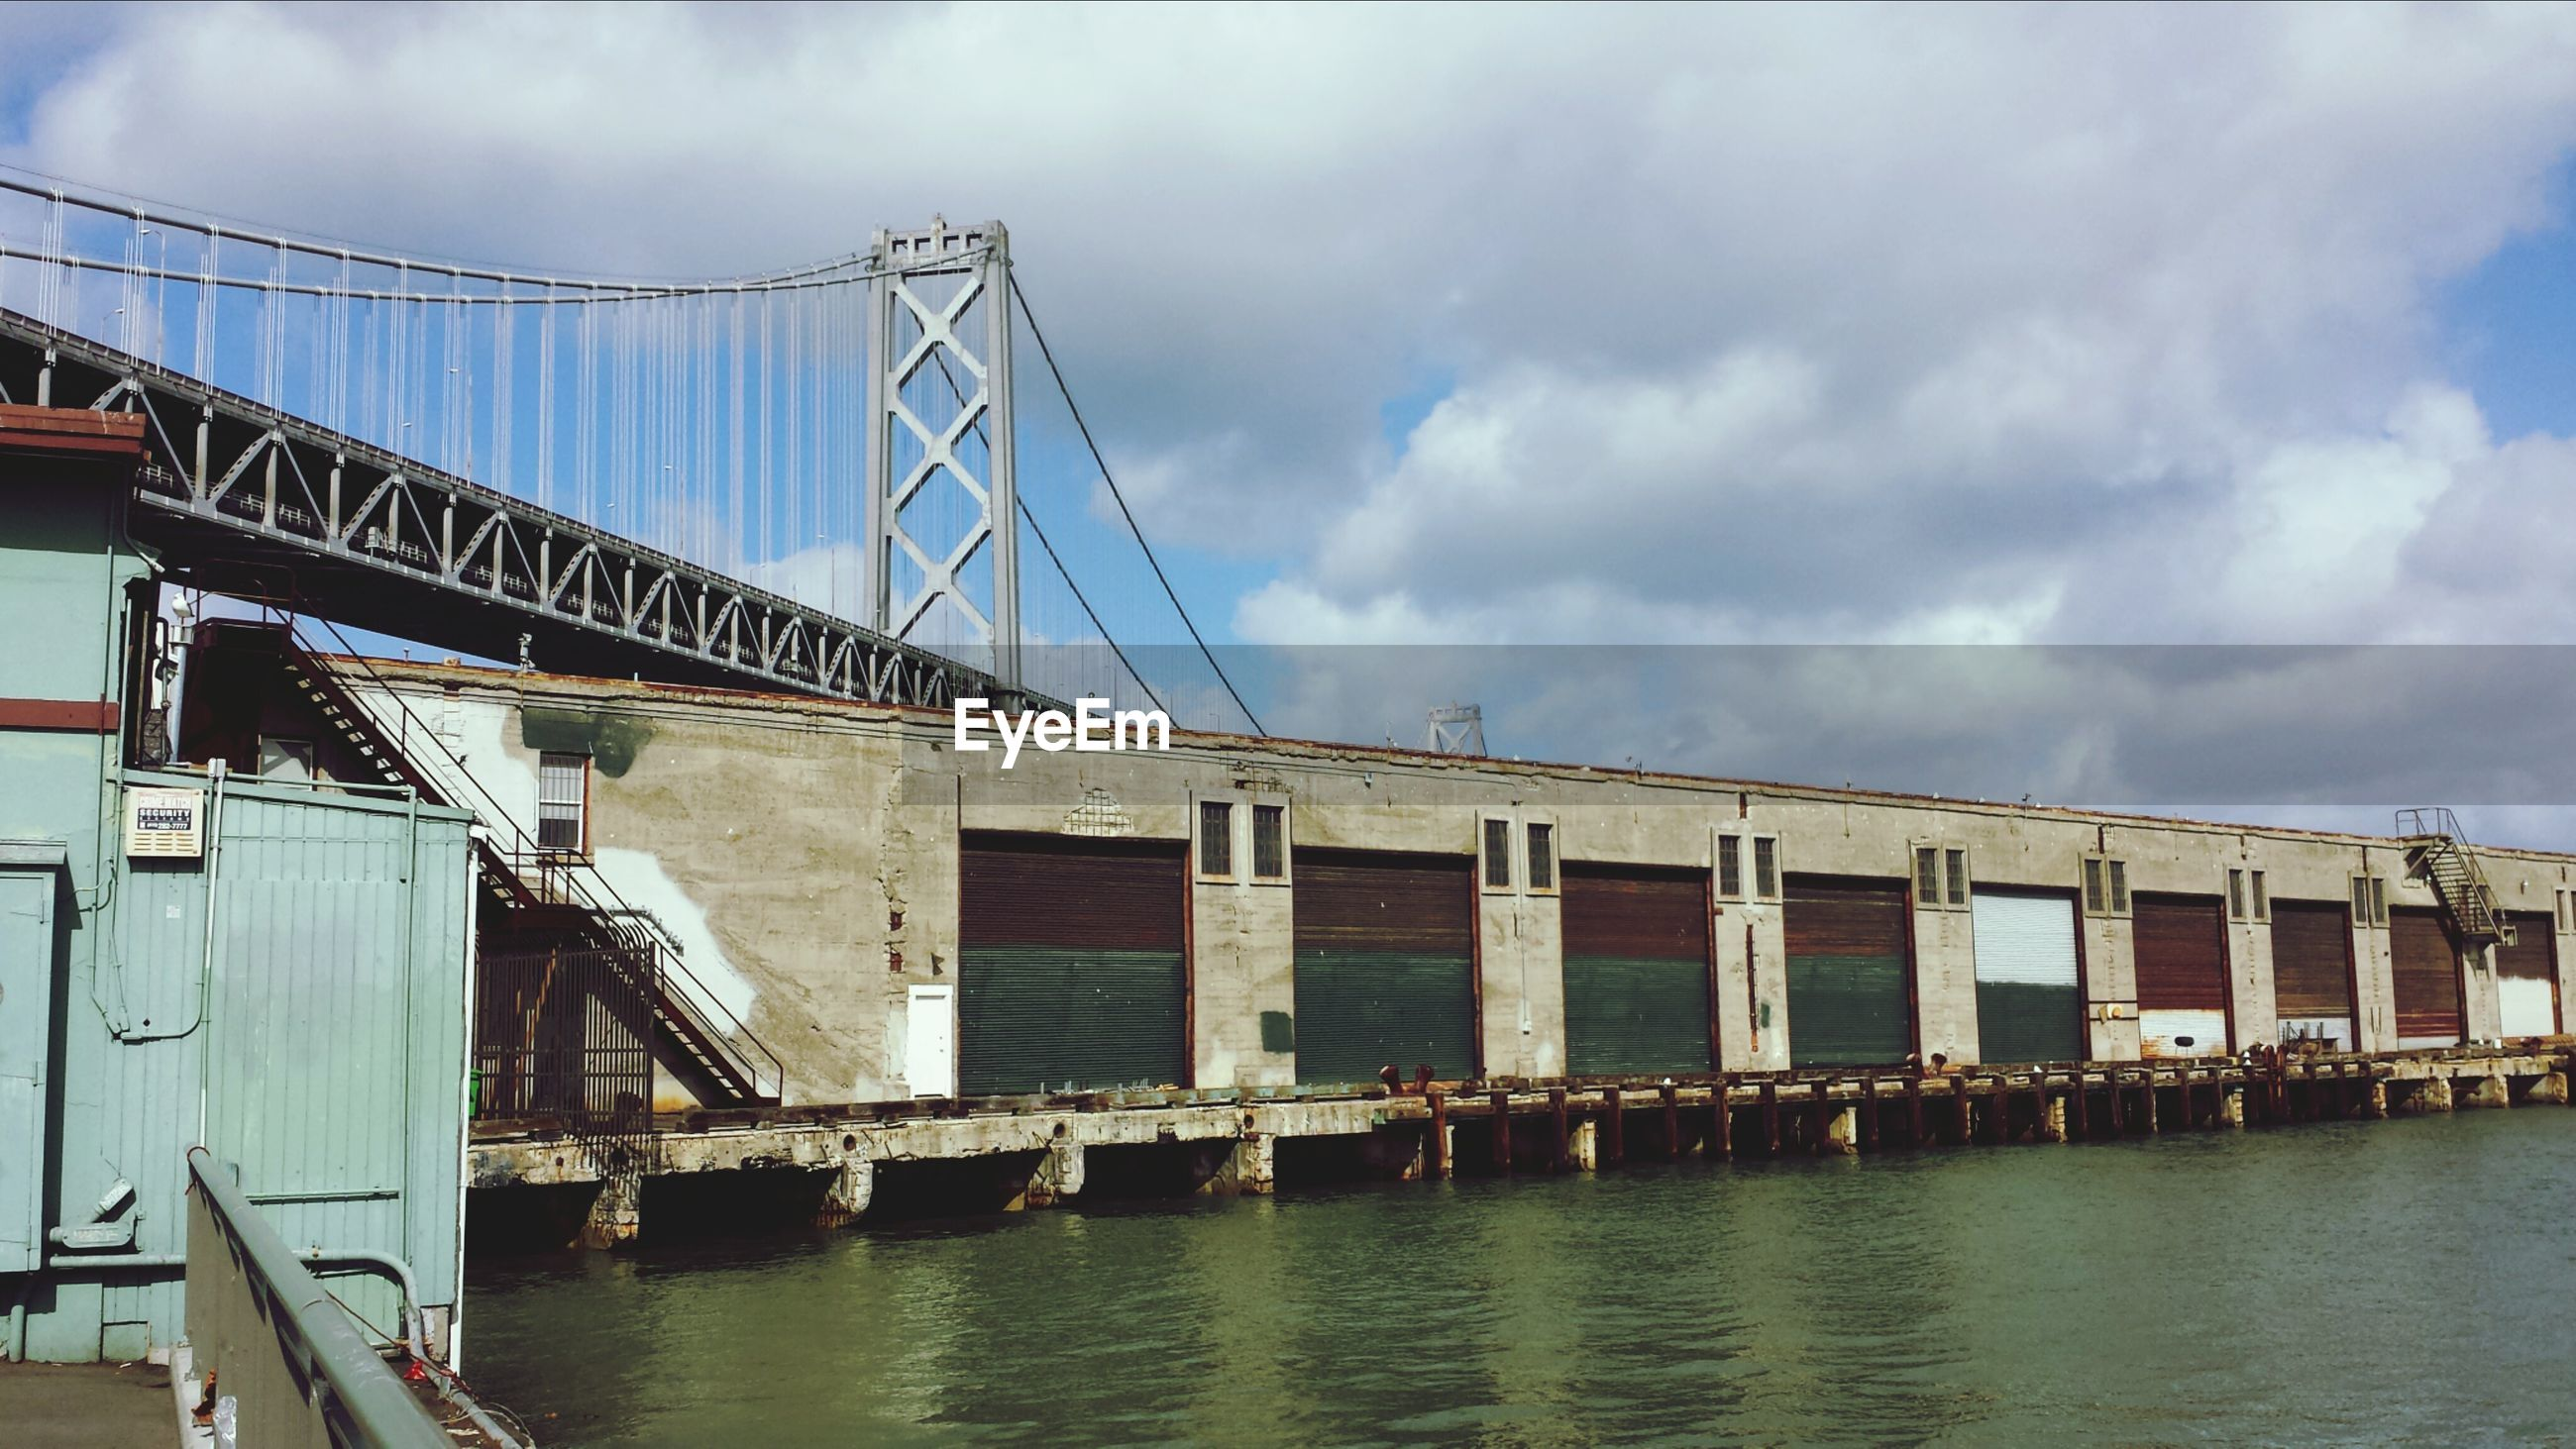 Commercial dock with bay bridge in background against cloudy sky